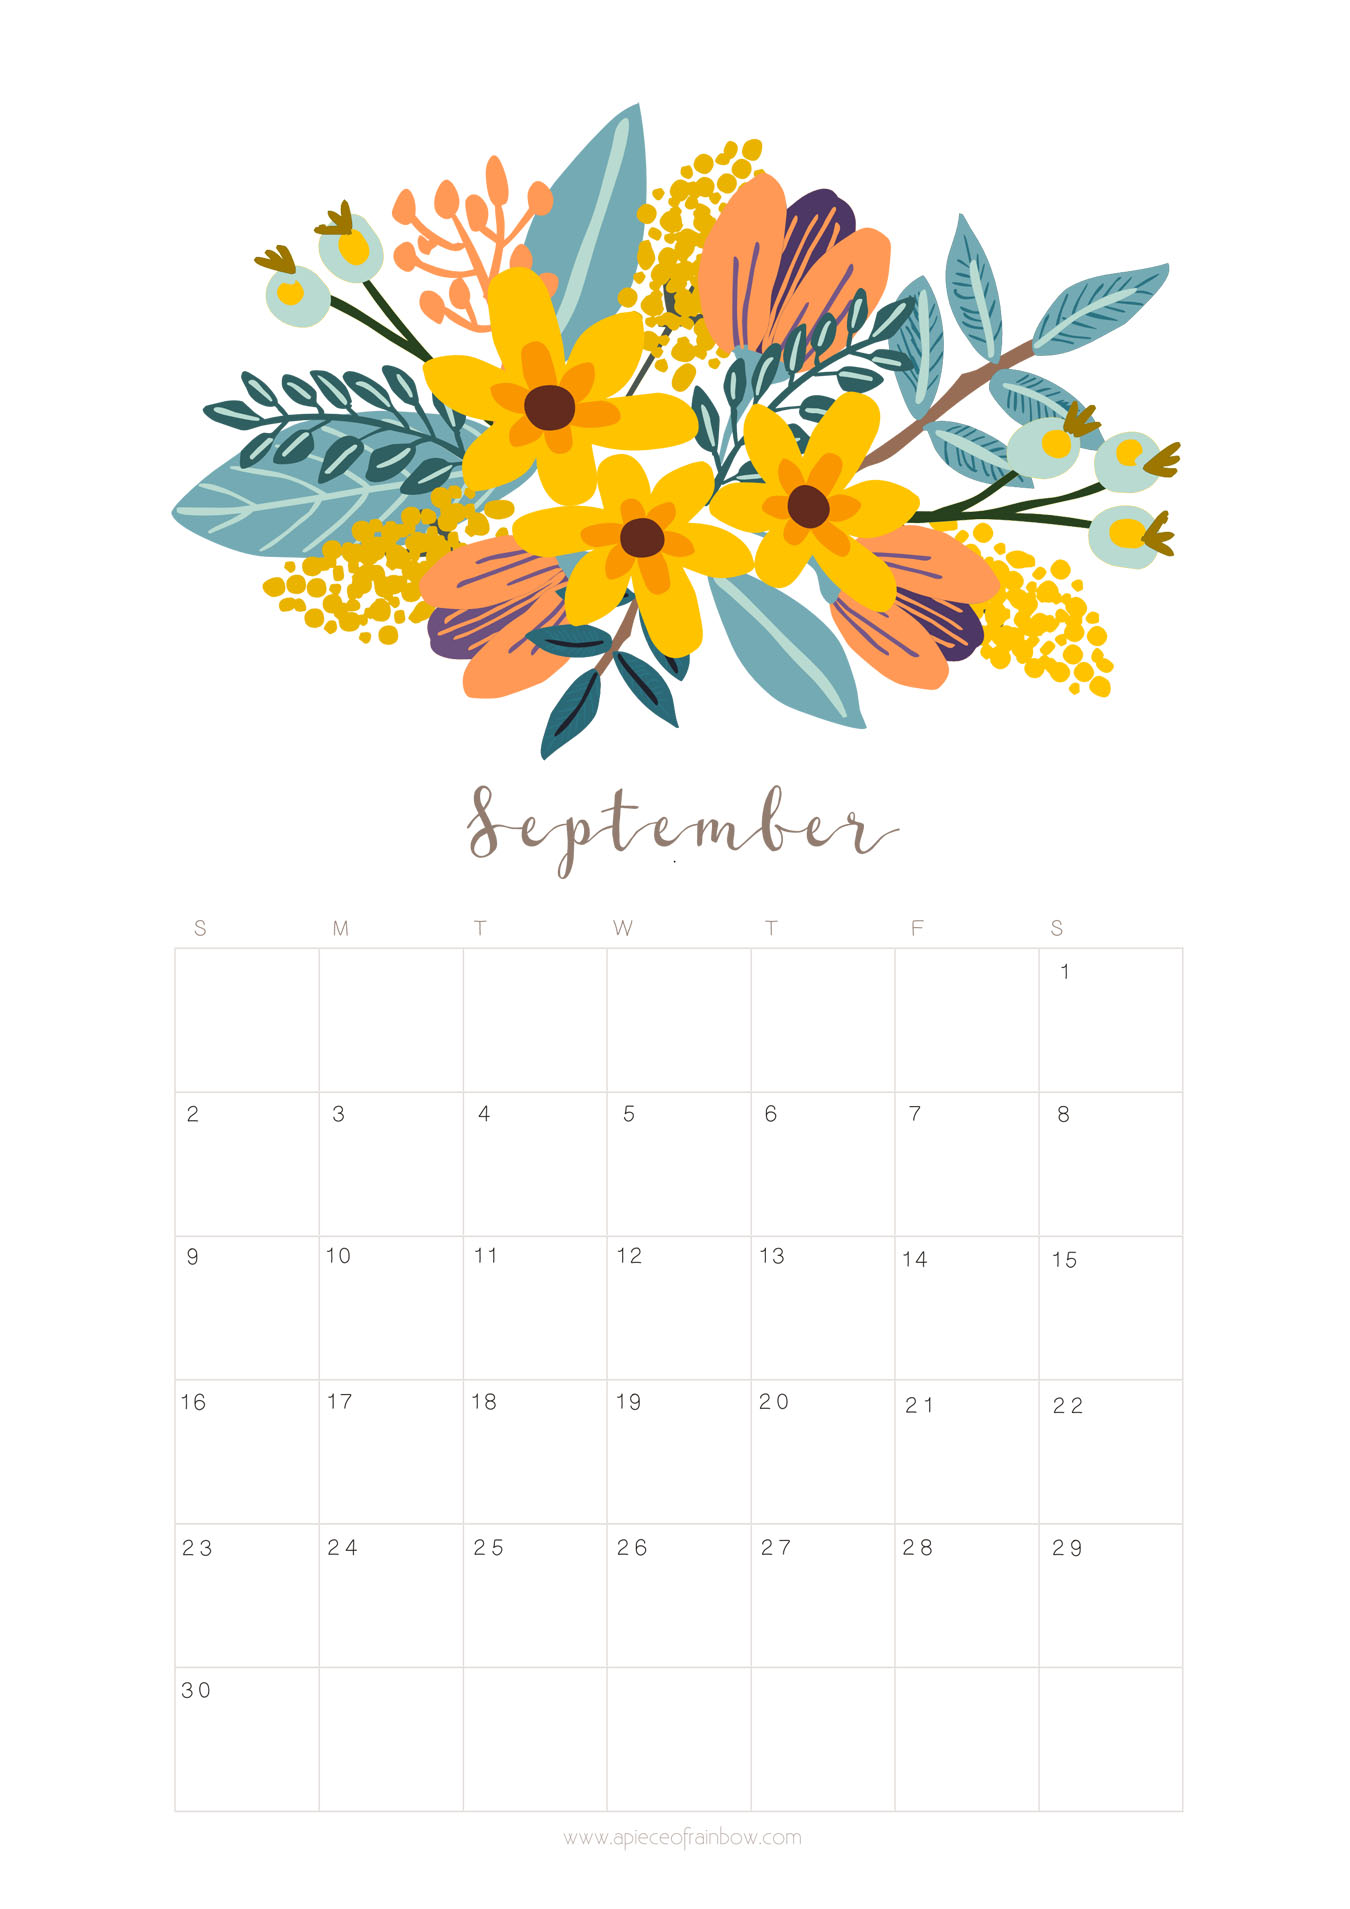 here is the full list of printable 2018 calendars and monthly planners